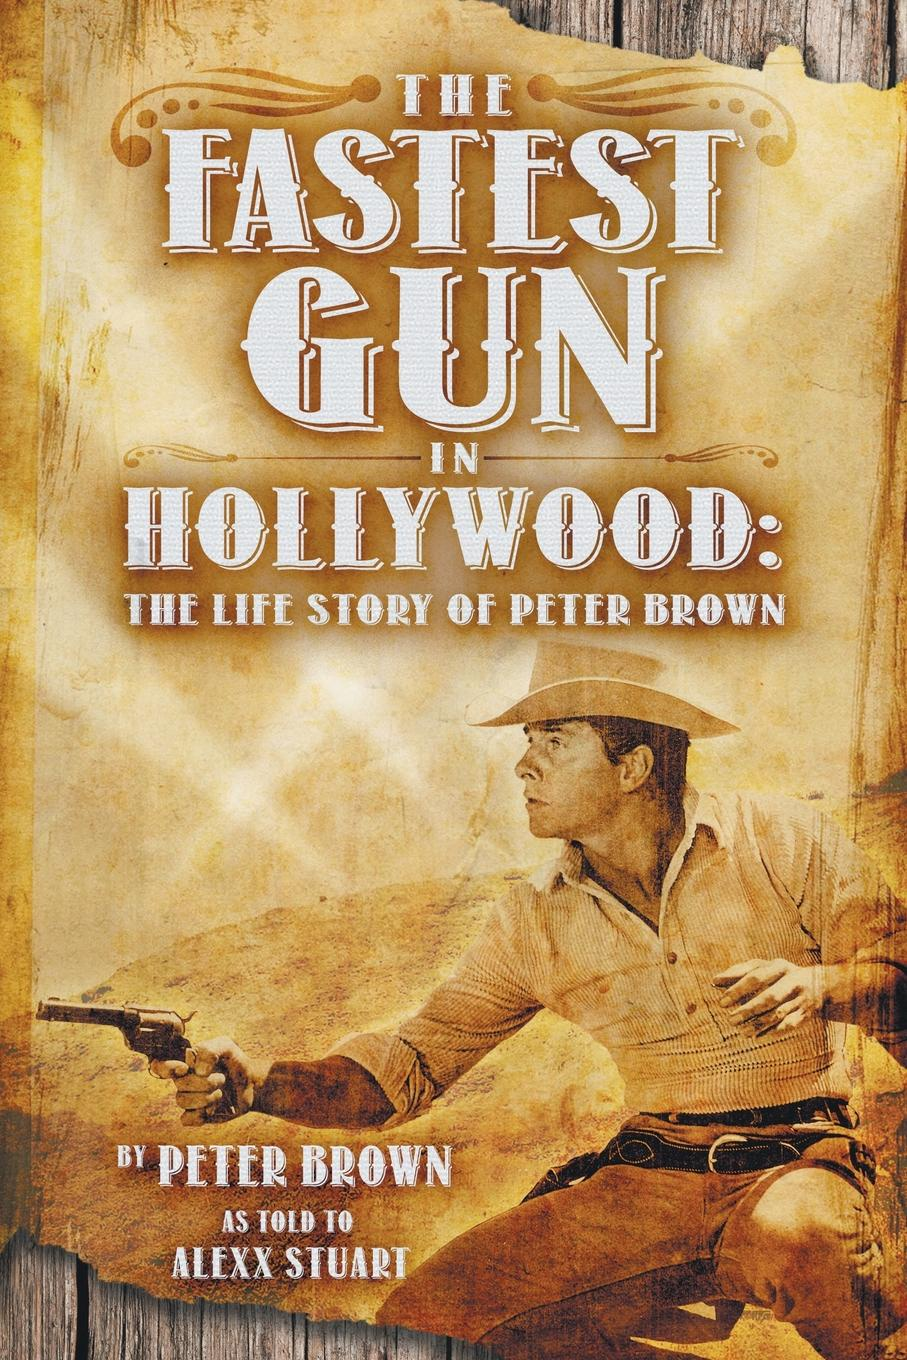 Peter Brown The Fastest Gun in Hollywood. The Life Story of Peter Brown peter abrams our story called life